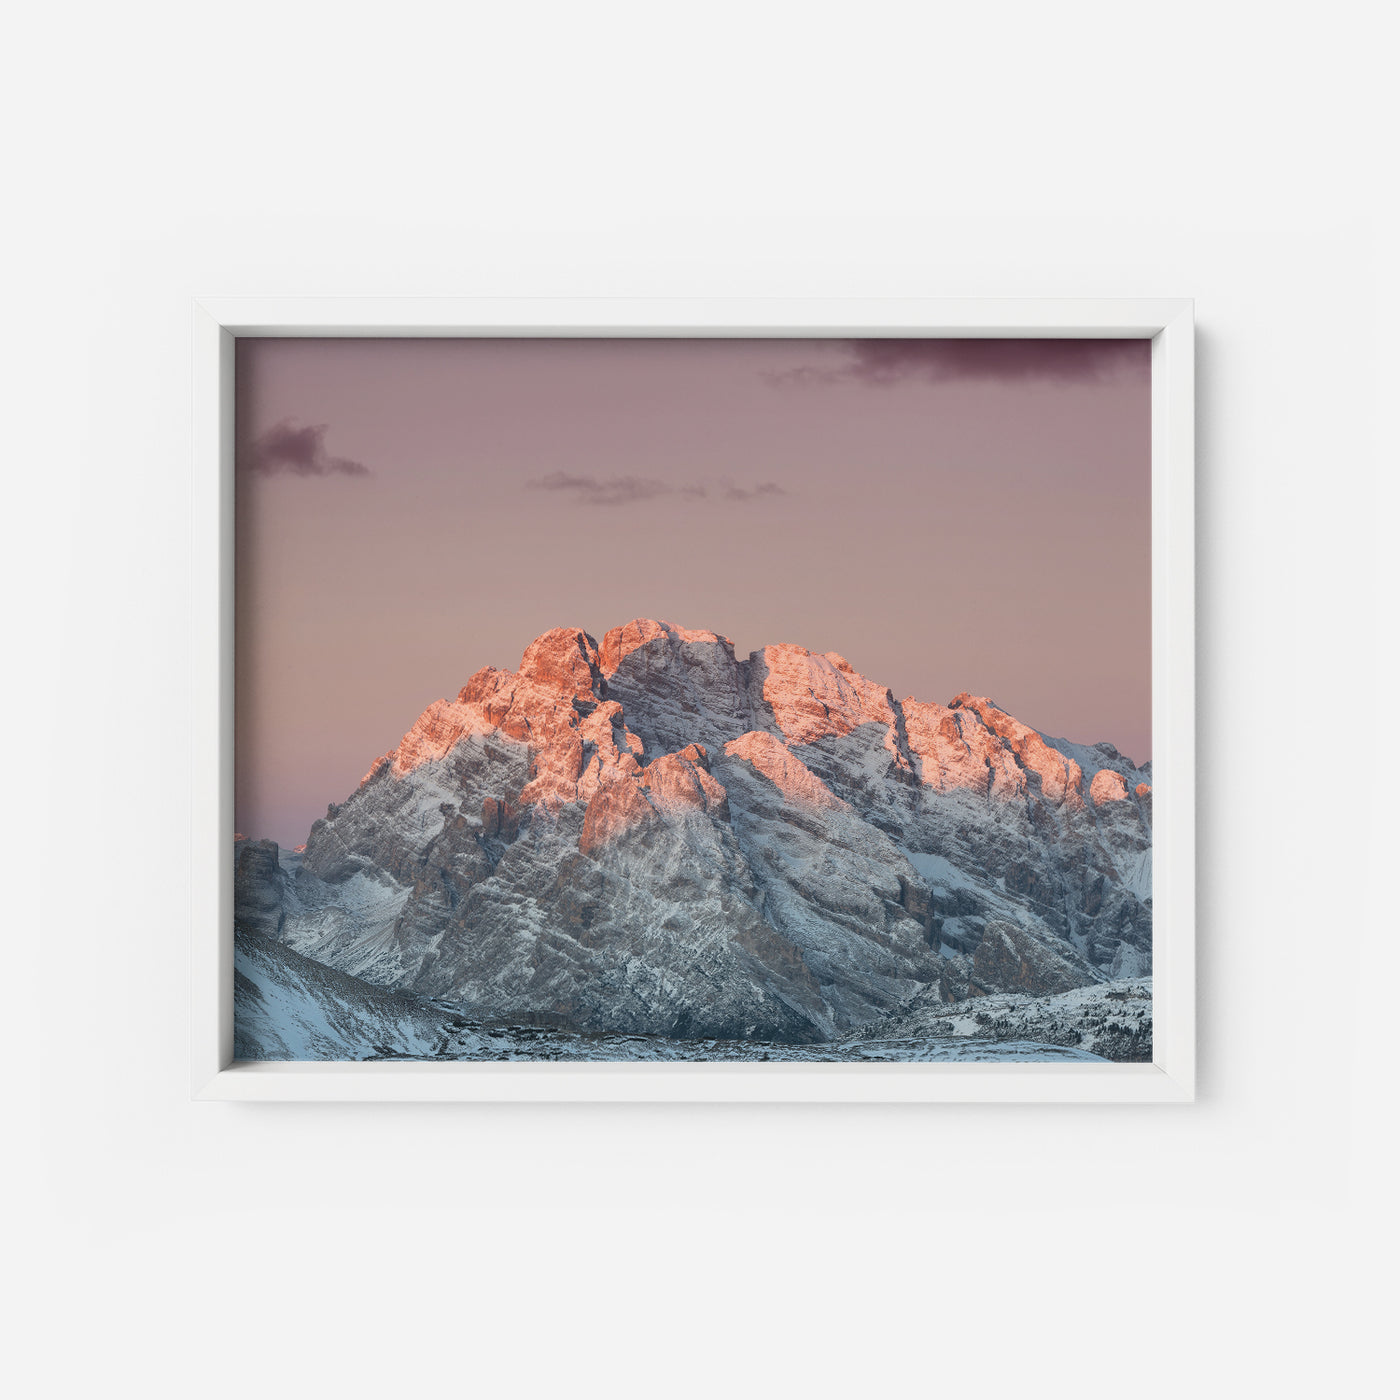 Italian Alps - THE PRINTABLE CONCEPT - Printable art posterDigital Download -